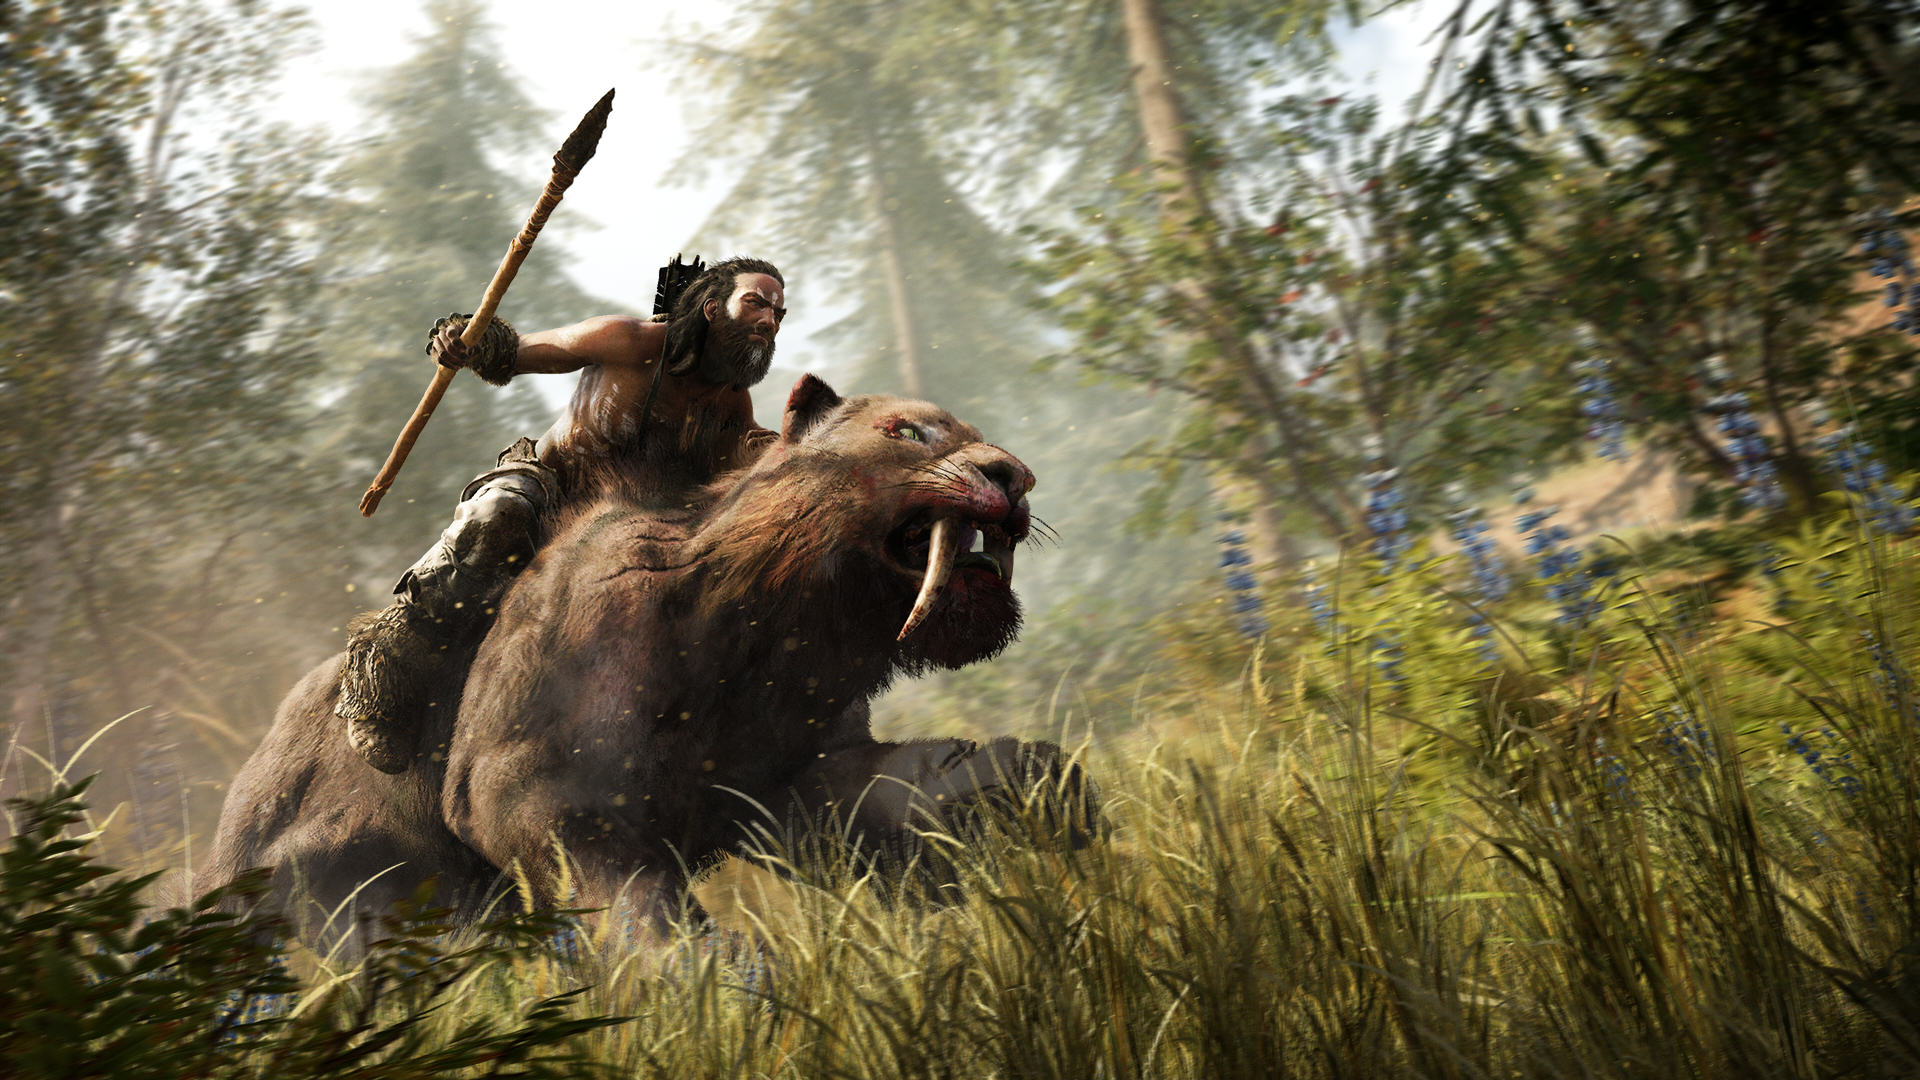 FCP Screen Riding Sabertooth BeastMaster Reveal 151204 5AM CET Far Cry Primal Is Shameless Pre Historic Fun, If A Little Shallow